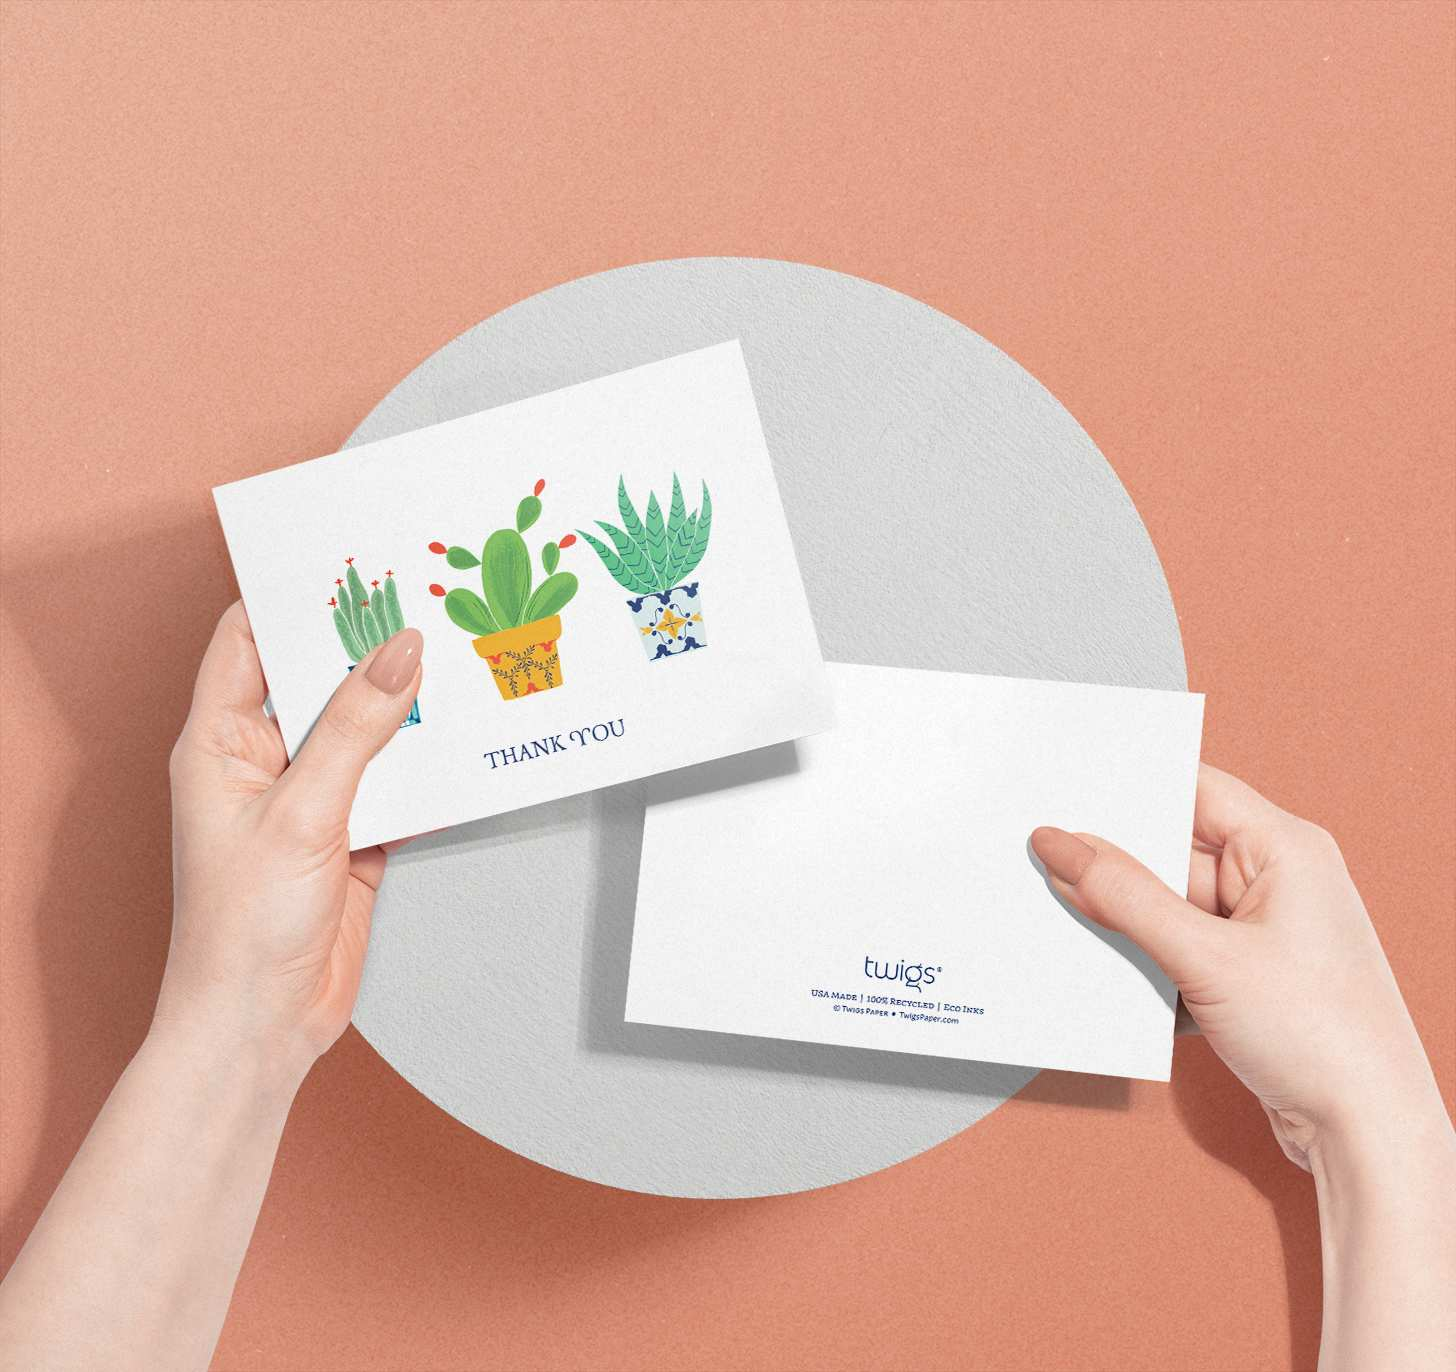 Hands holding card with three colorful cactus designs